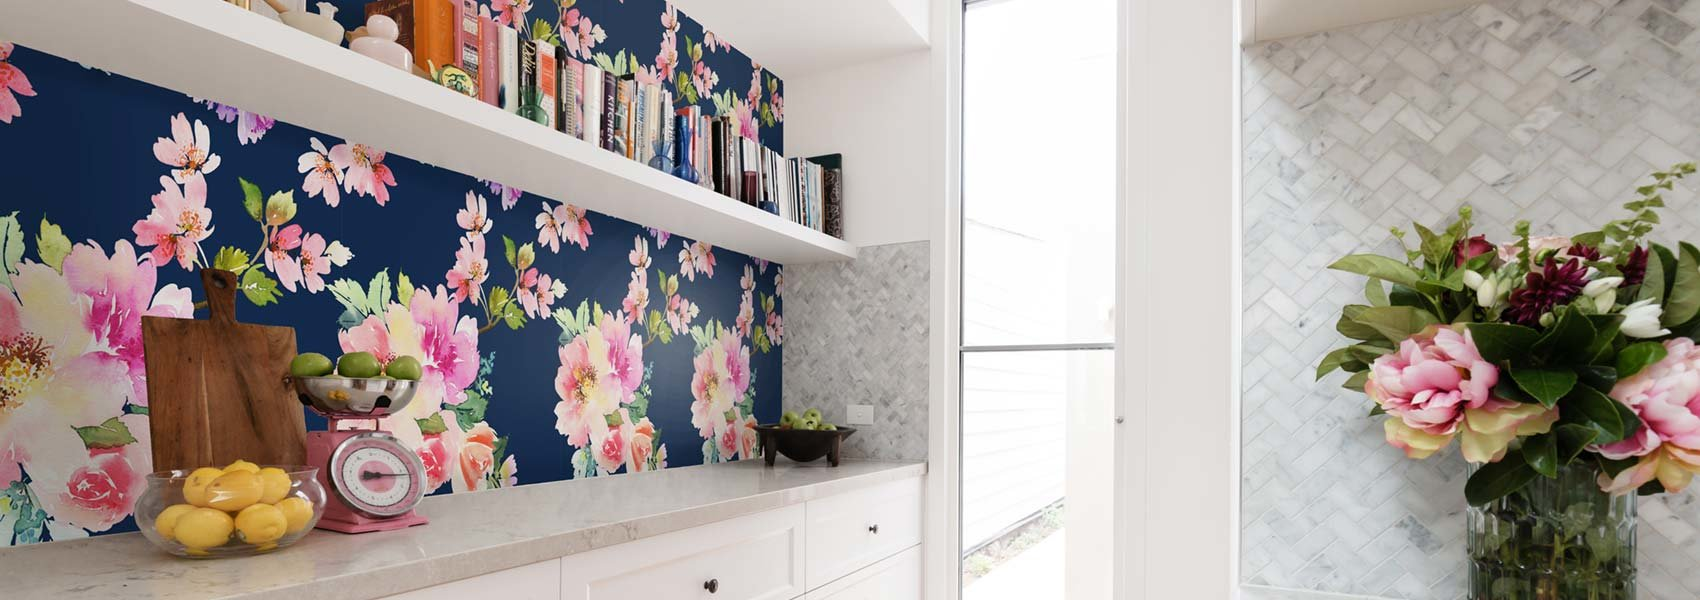 floral mural in kitchen pantry